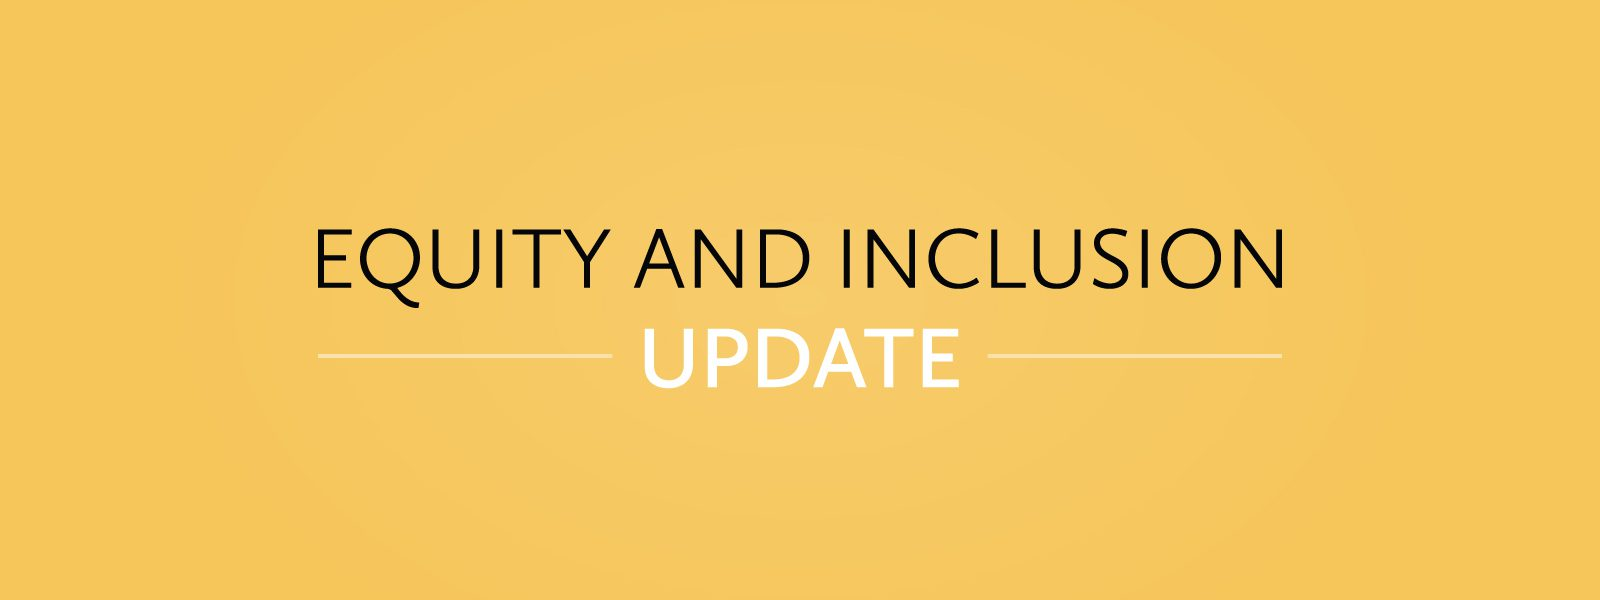 "A yellow ""Equity and Inclusion Update"" image with black and white lettering."